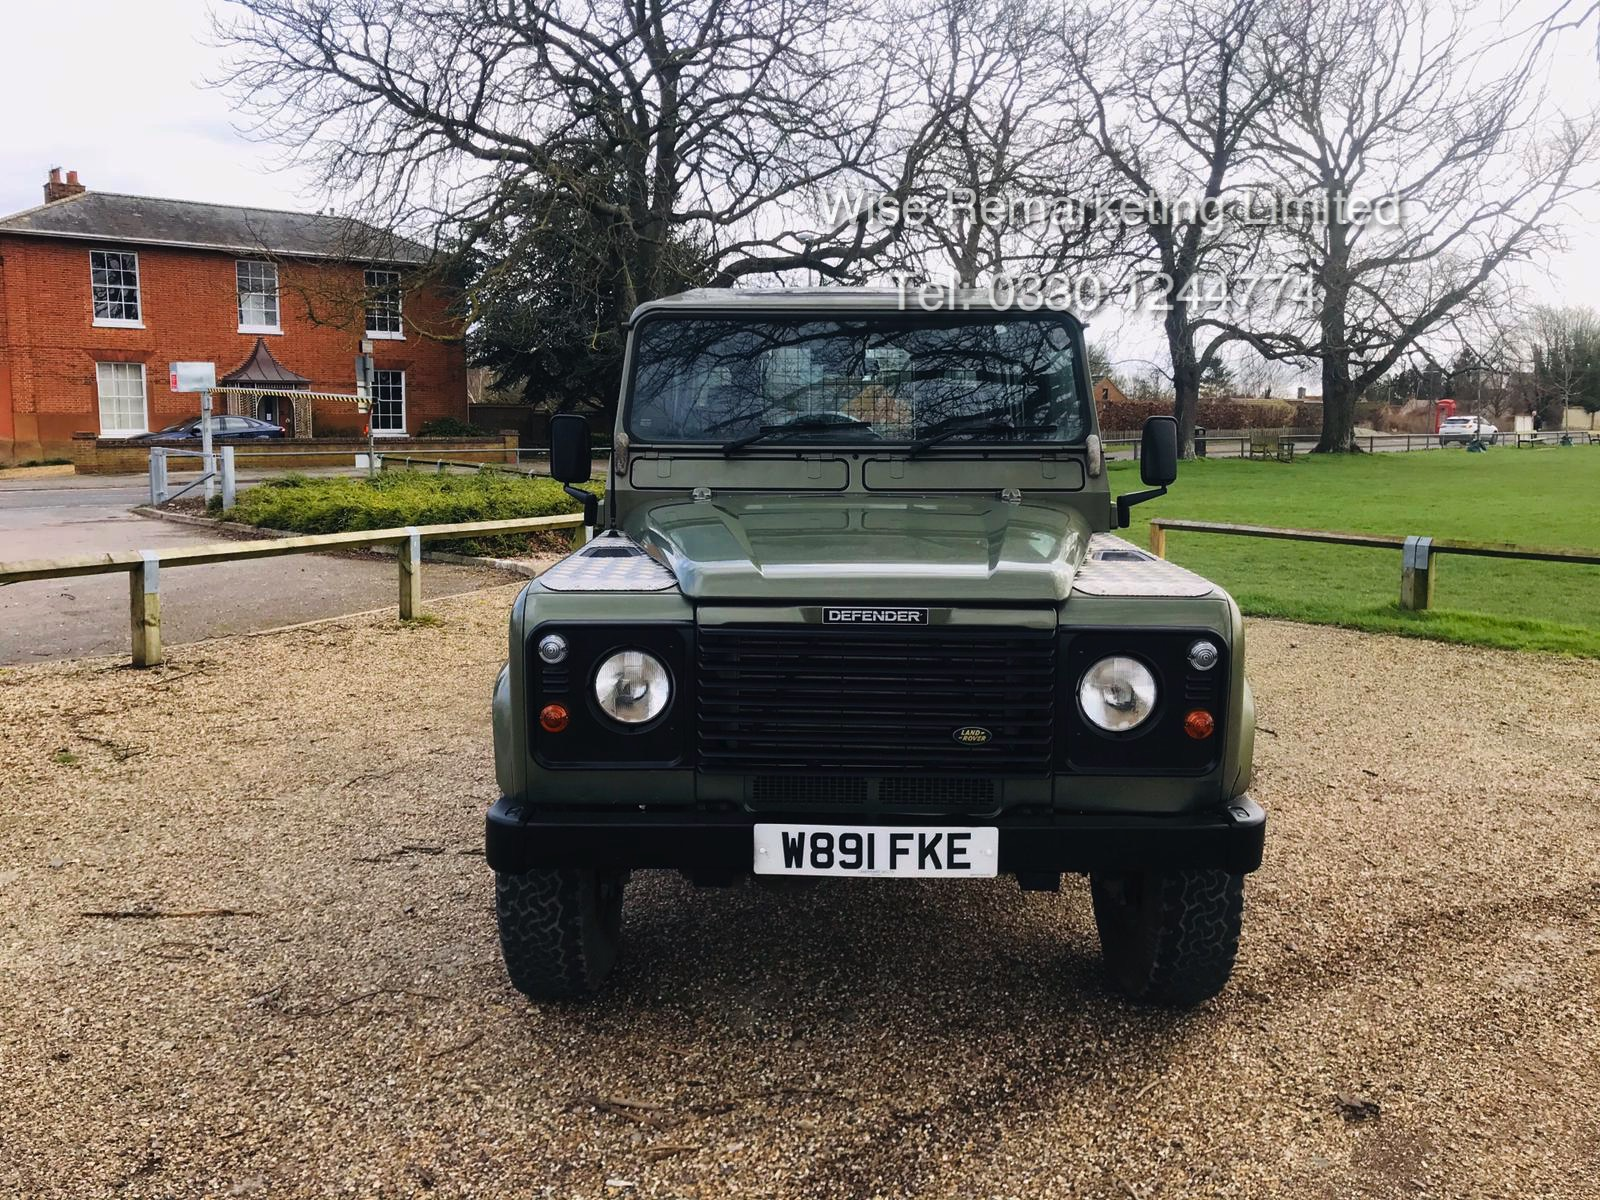 Land Rover Defender 90 County 2.5 TD5 - 2000 Year W Reg - 7 Seater - RARE - SAVE 20% NO VAT - Image 2 of 12